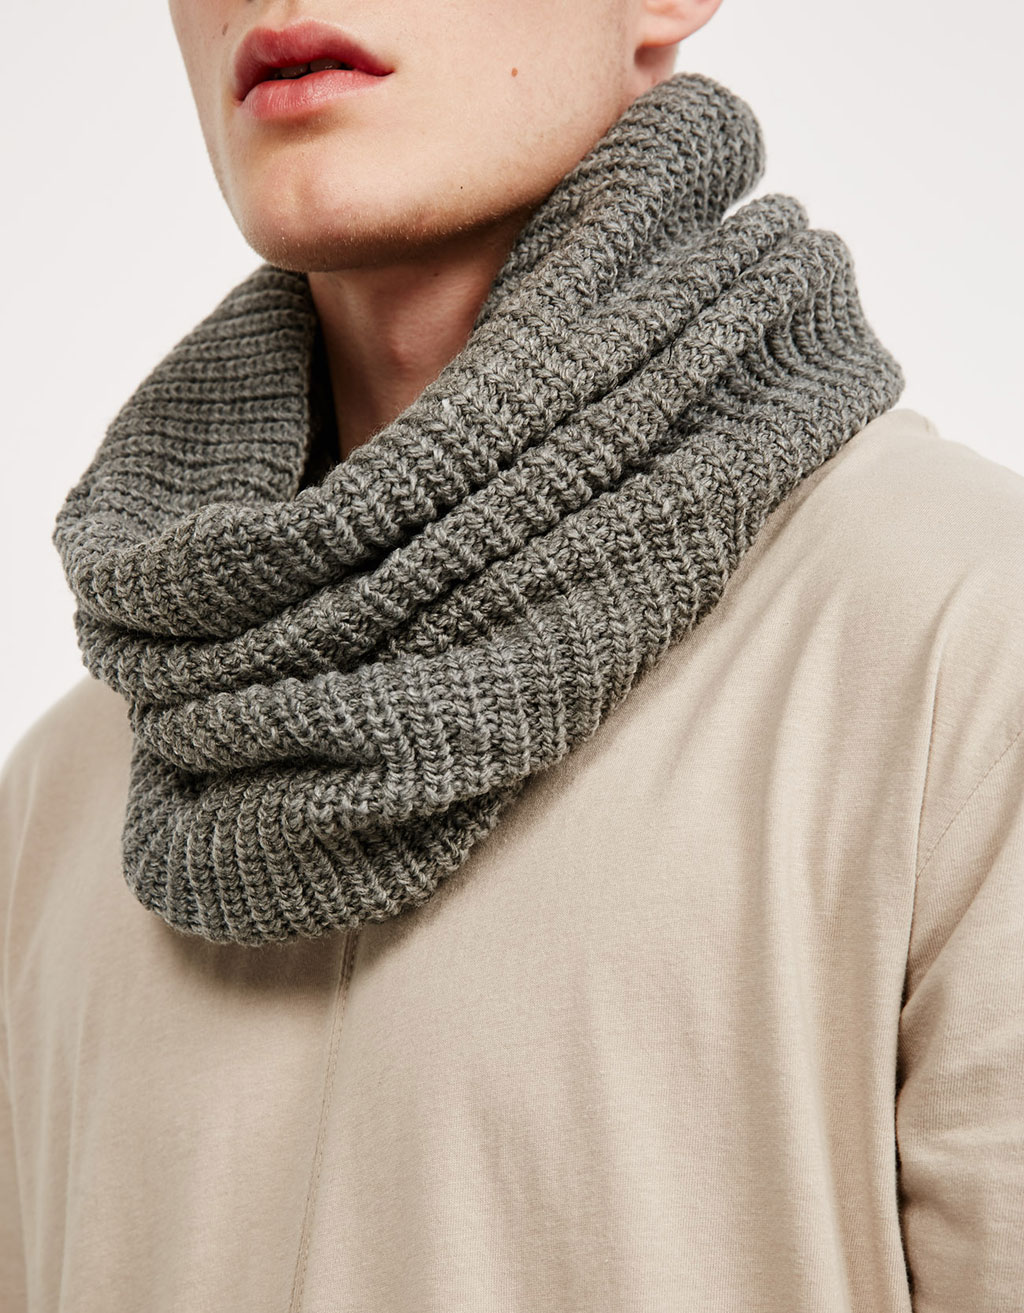 Fular snood reiat